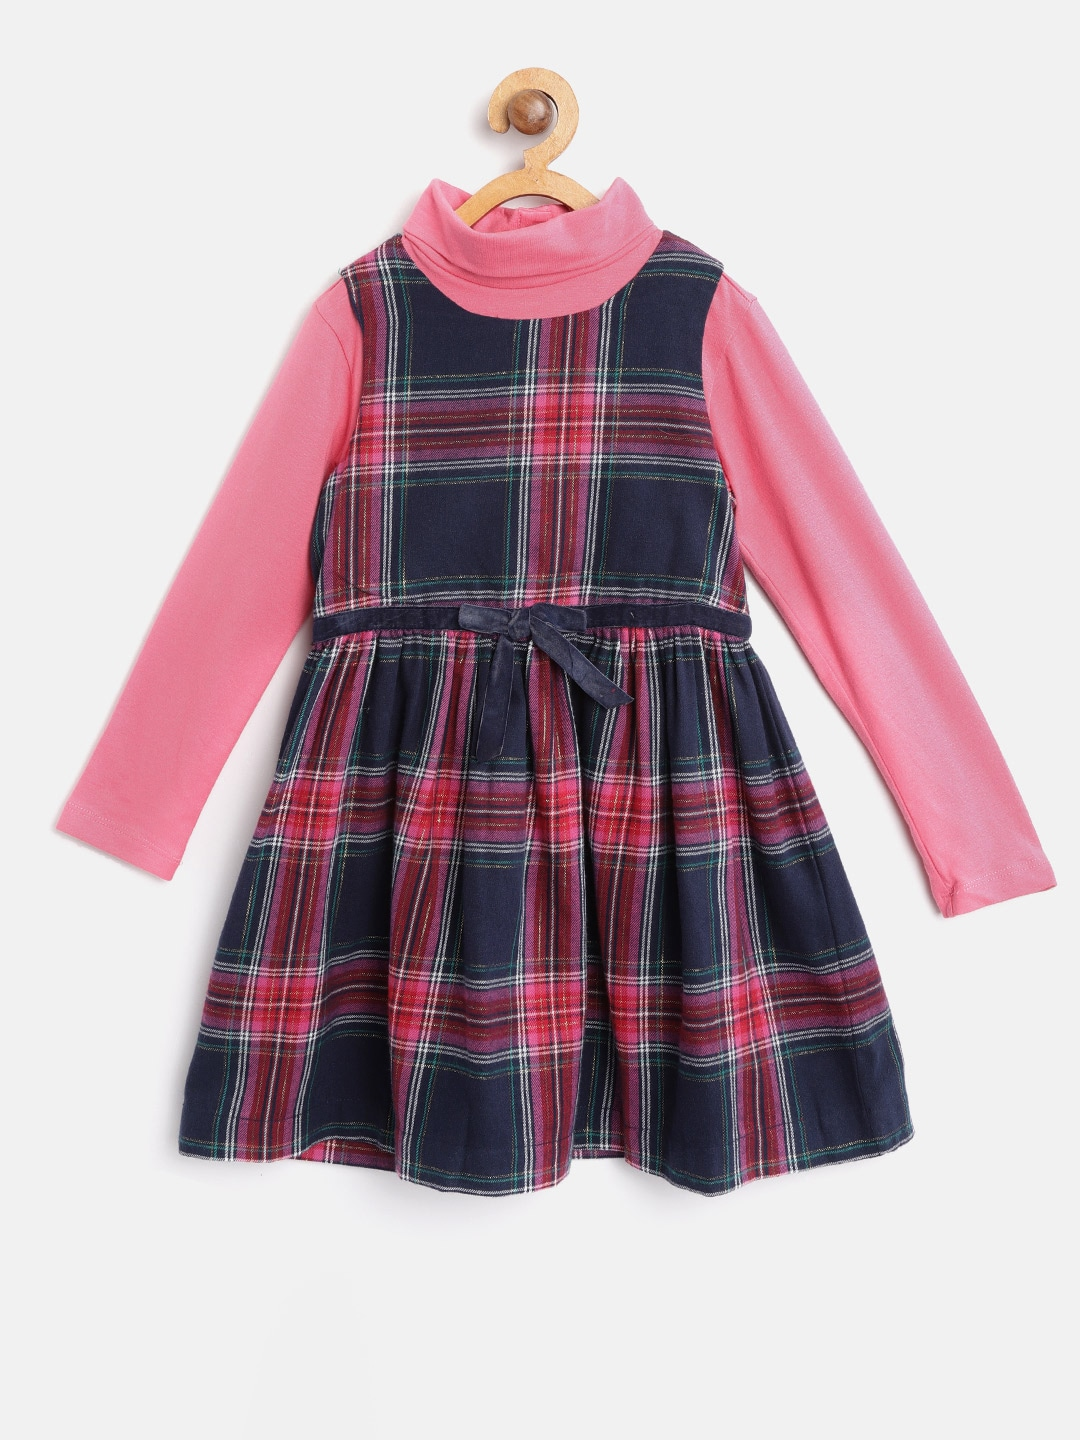 c4677dcaf07 Girls Dresses - Buy Frocks   Gowns for Girls Online